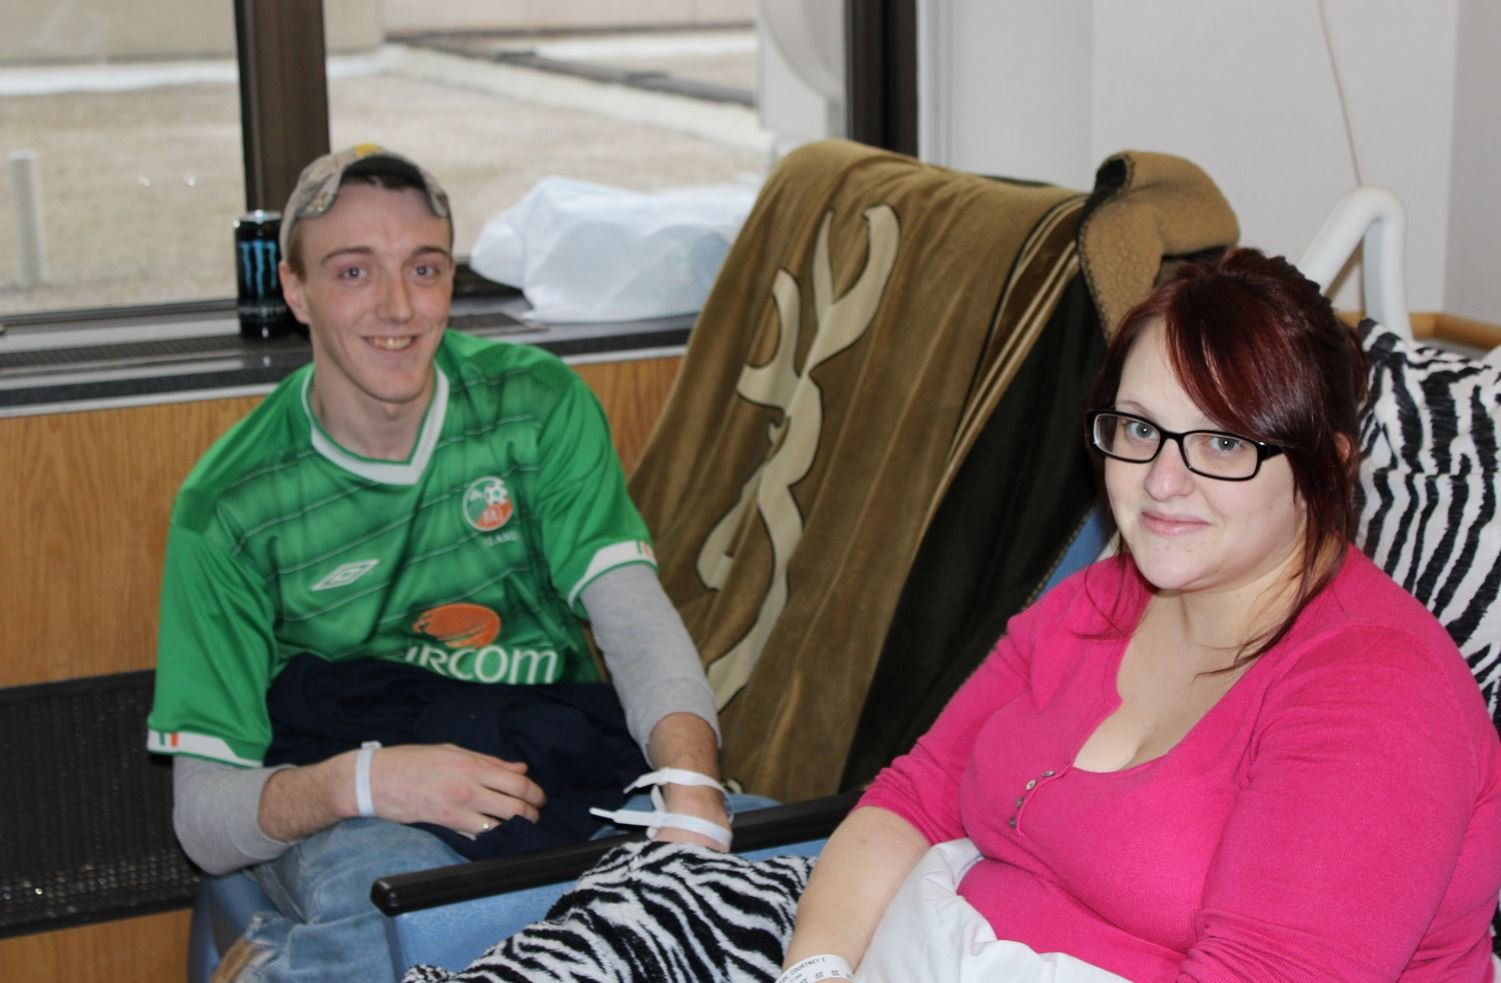 Courtney Stash and Justin Dwyer, photographed after the birth of their triplets on Christmas Day in 2014.